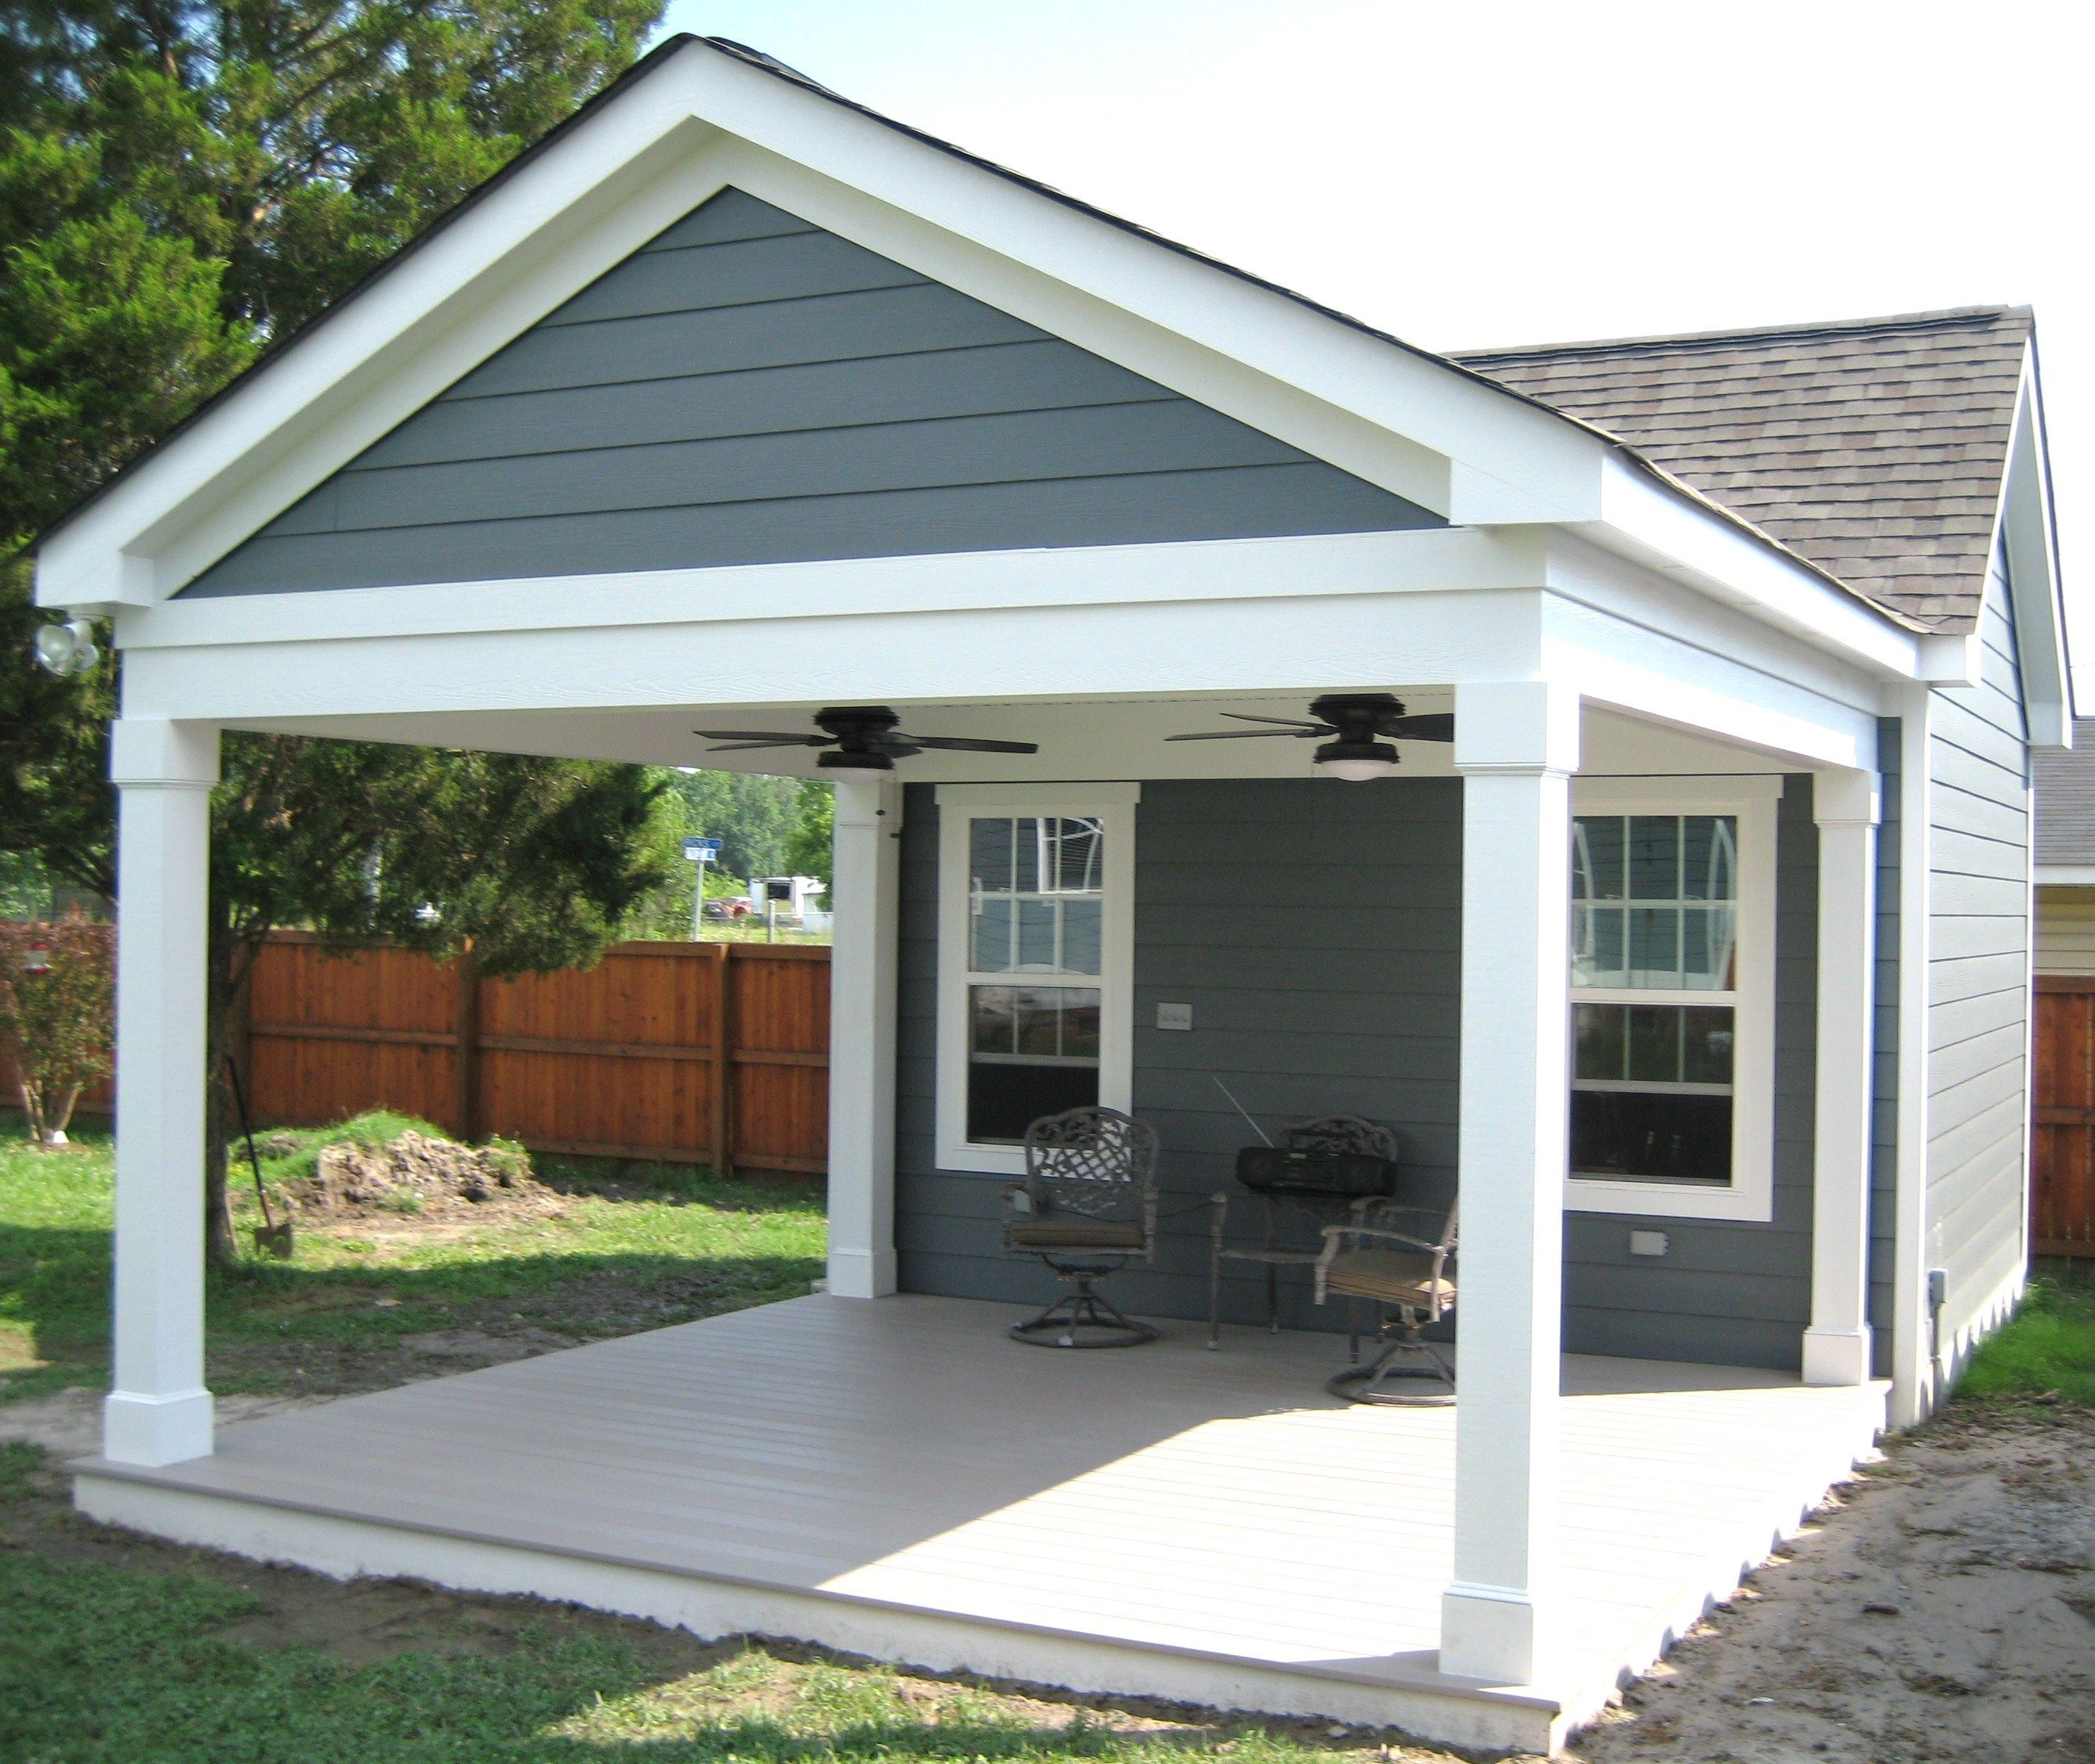 40 Best Detached Garage Model For Your Wonderful House Shed With Porch Backyard Patio Backyard Sheds